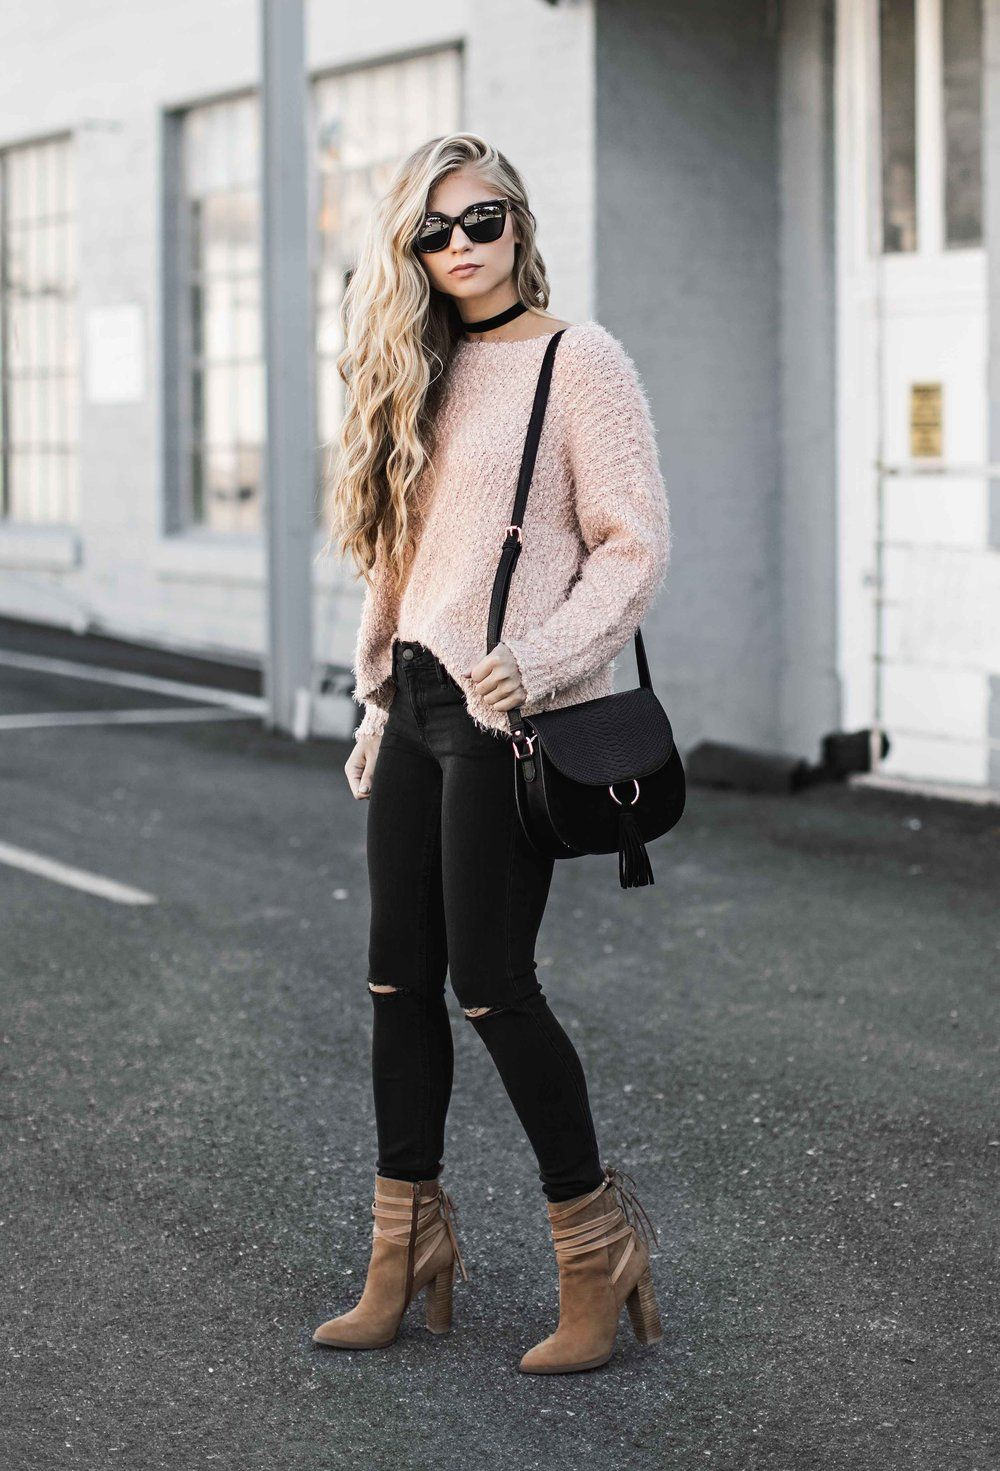 5a50c6d583c Pale pink sweater + black distressed skinny jeans + black choker + tan  pointed toe booties